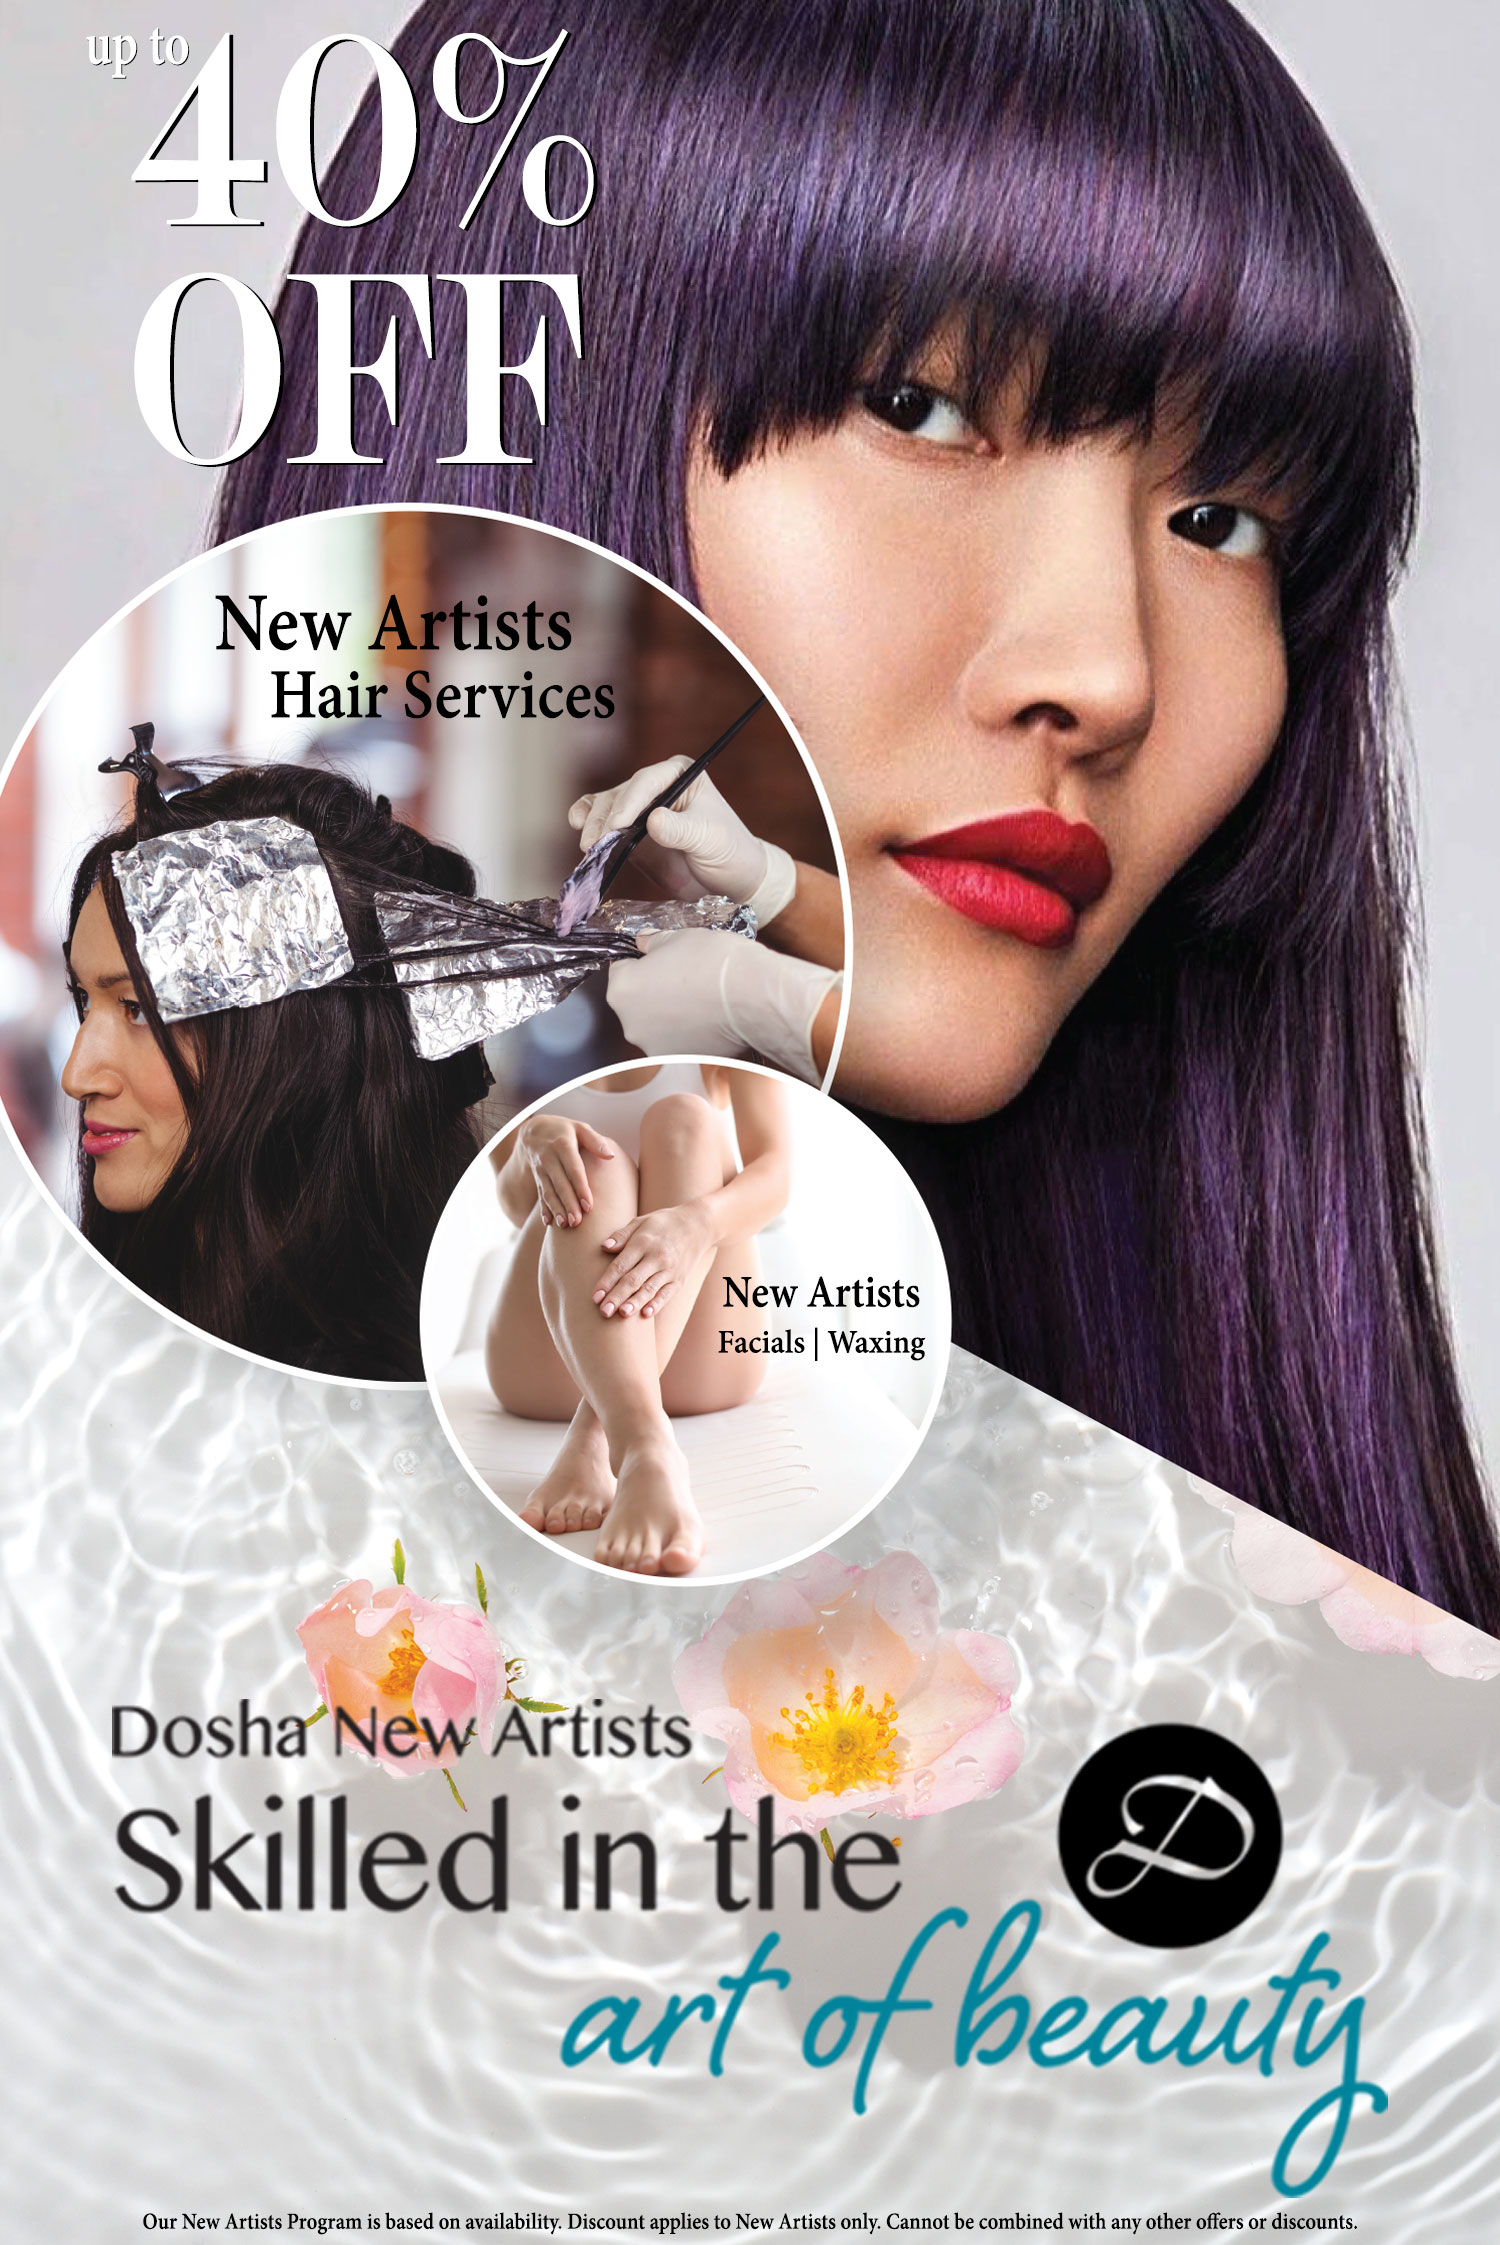 Dosha Salon Spa New Artists - Up to 40% Off Services